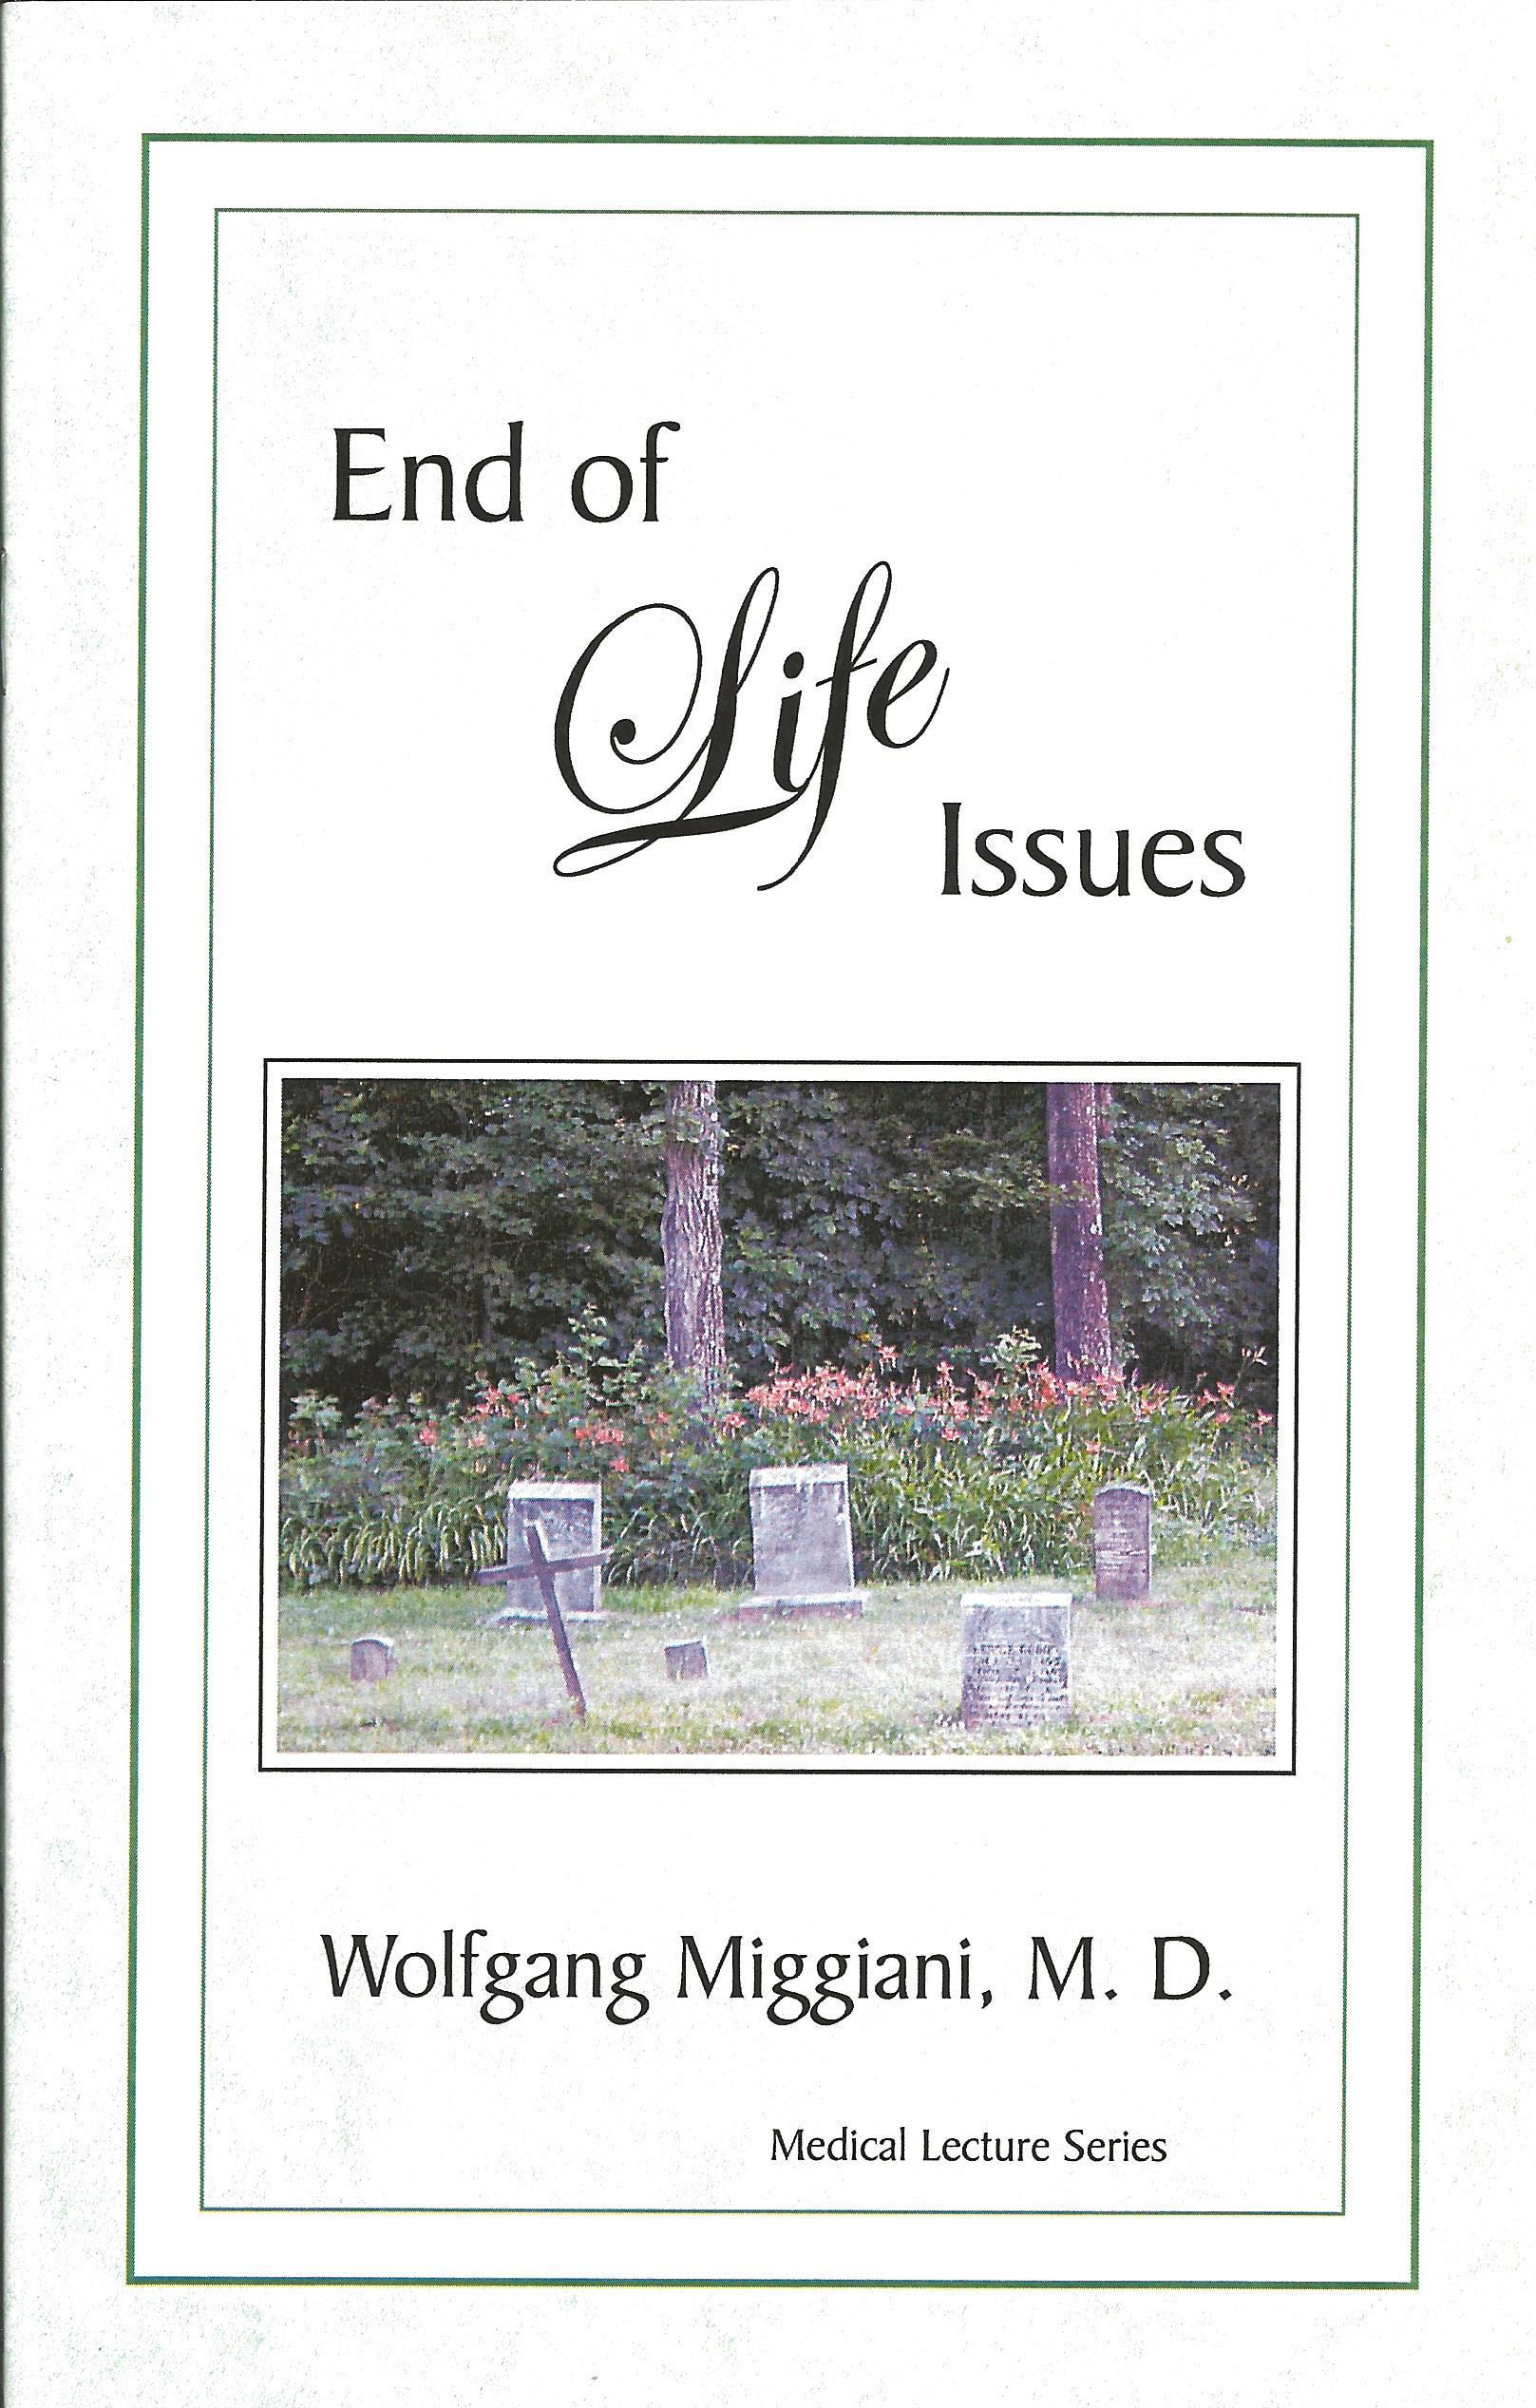 END OF LIFE ISSUES Wolfgang Miggiani, M.D.